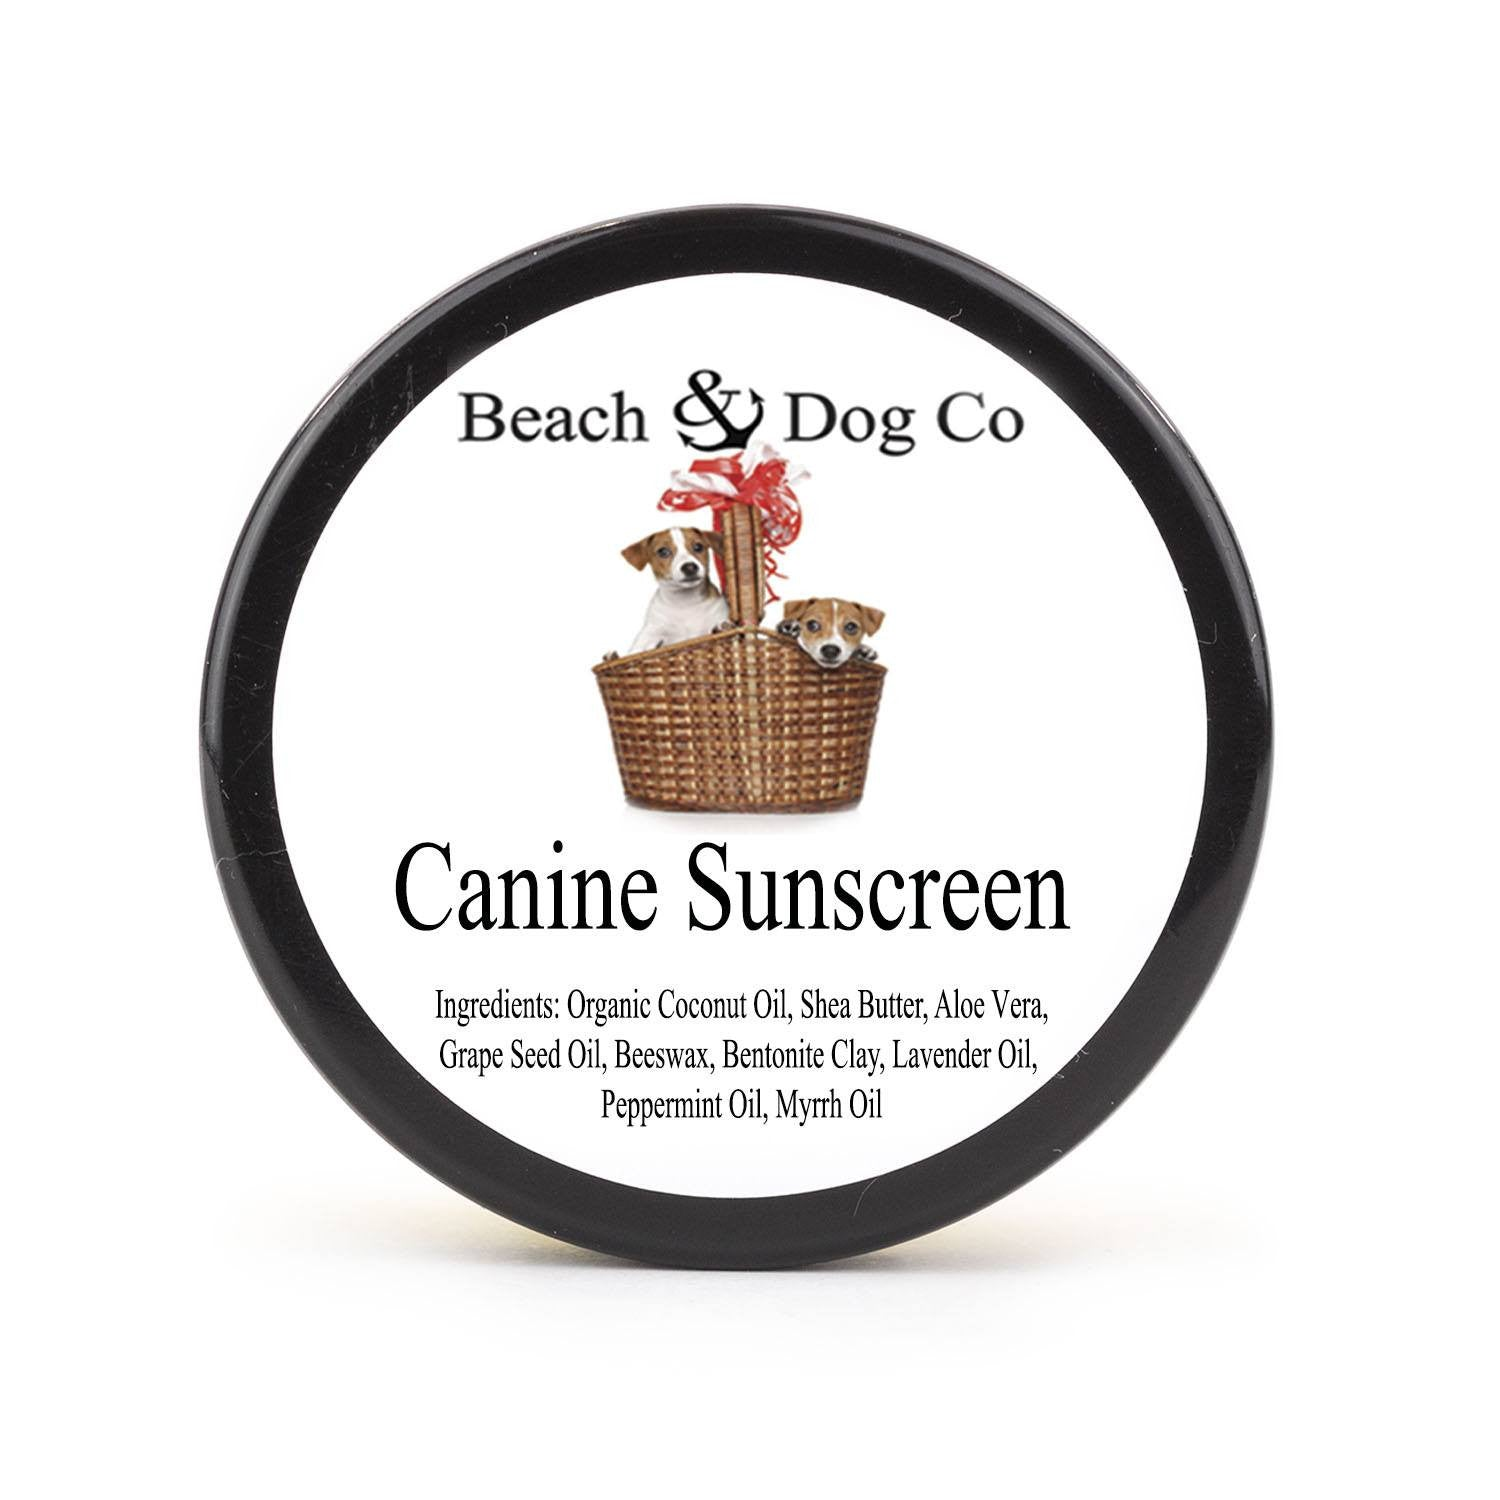 Canine Sunscreen - 2 oz - Zinc and Titanium Dioxide Free - All Natural and Organic Formula - Beach & Dog Co.